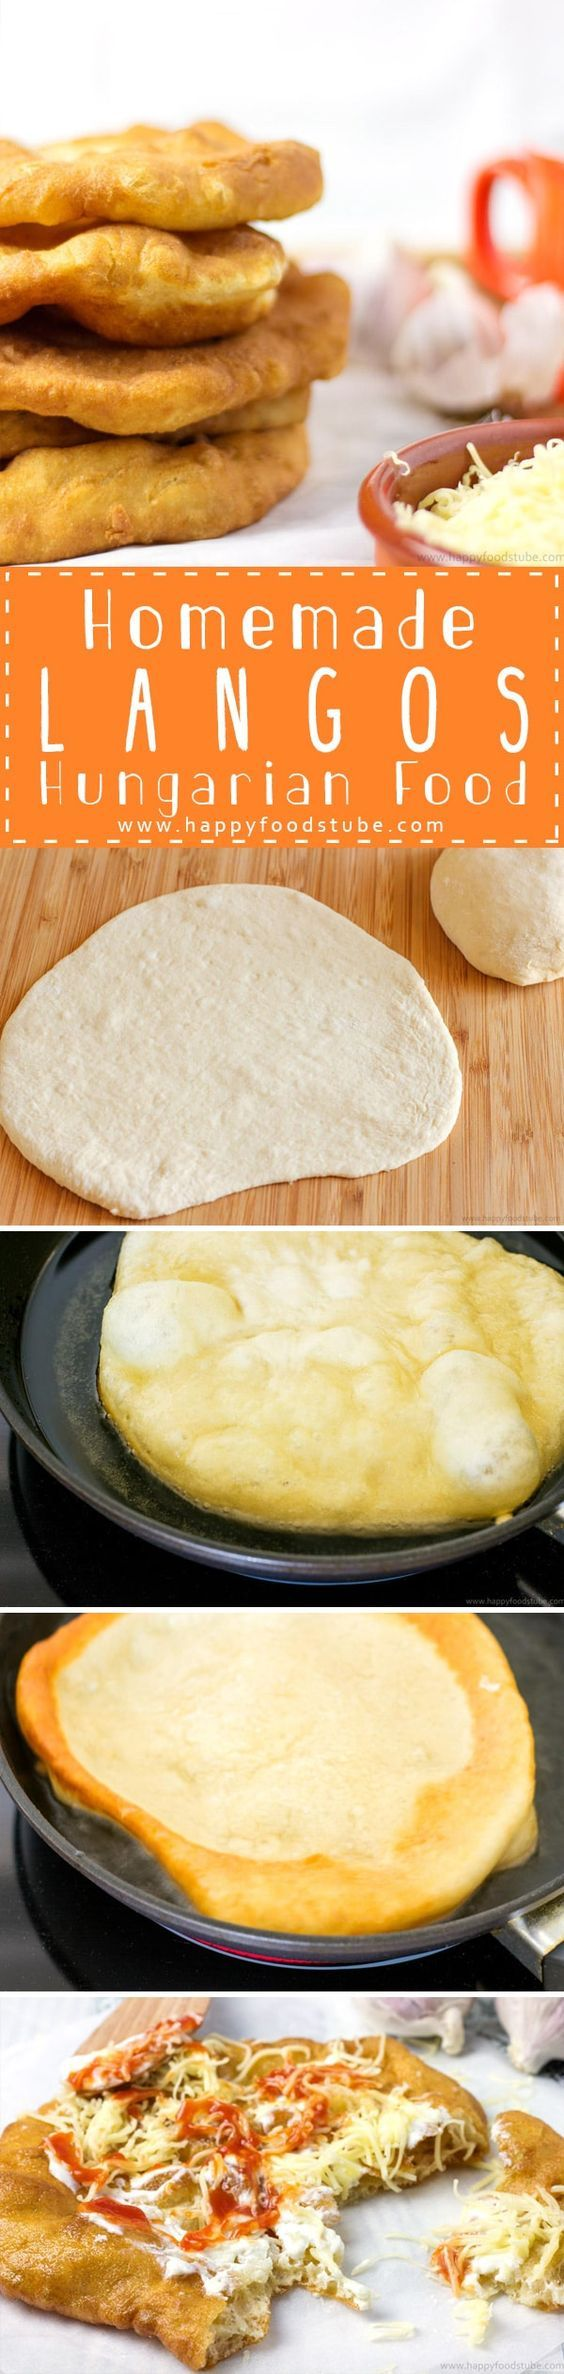 Langos (pronounce Langosh) is a Hungarian deep fried flat bread (made of yeast, flour & water). Only 5 ingredients via @happyfoodstube